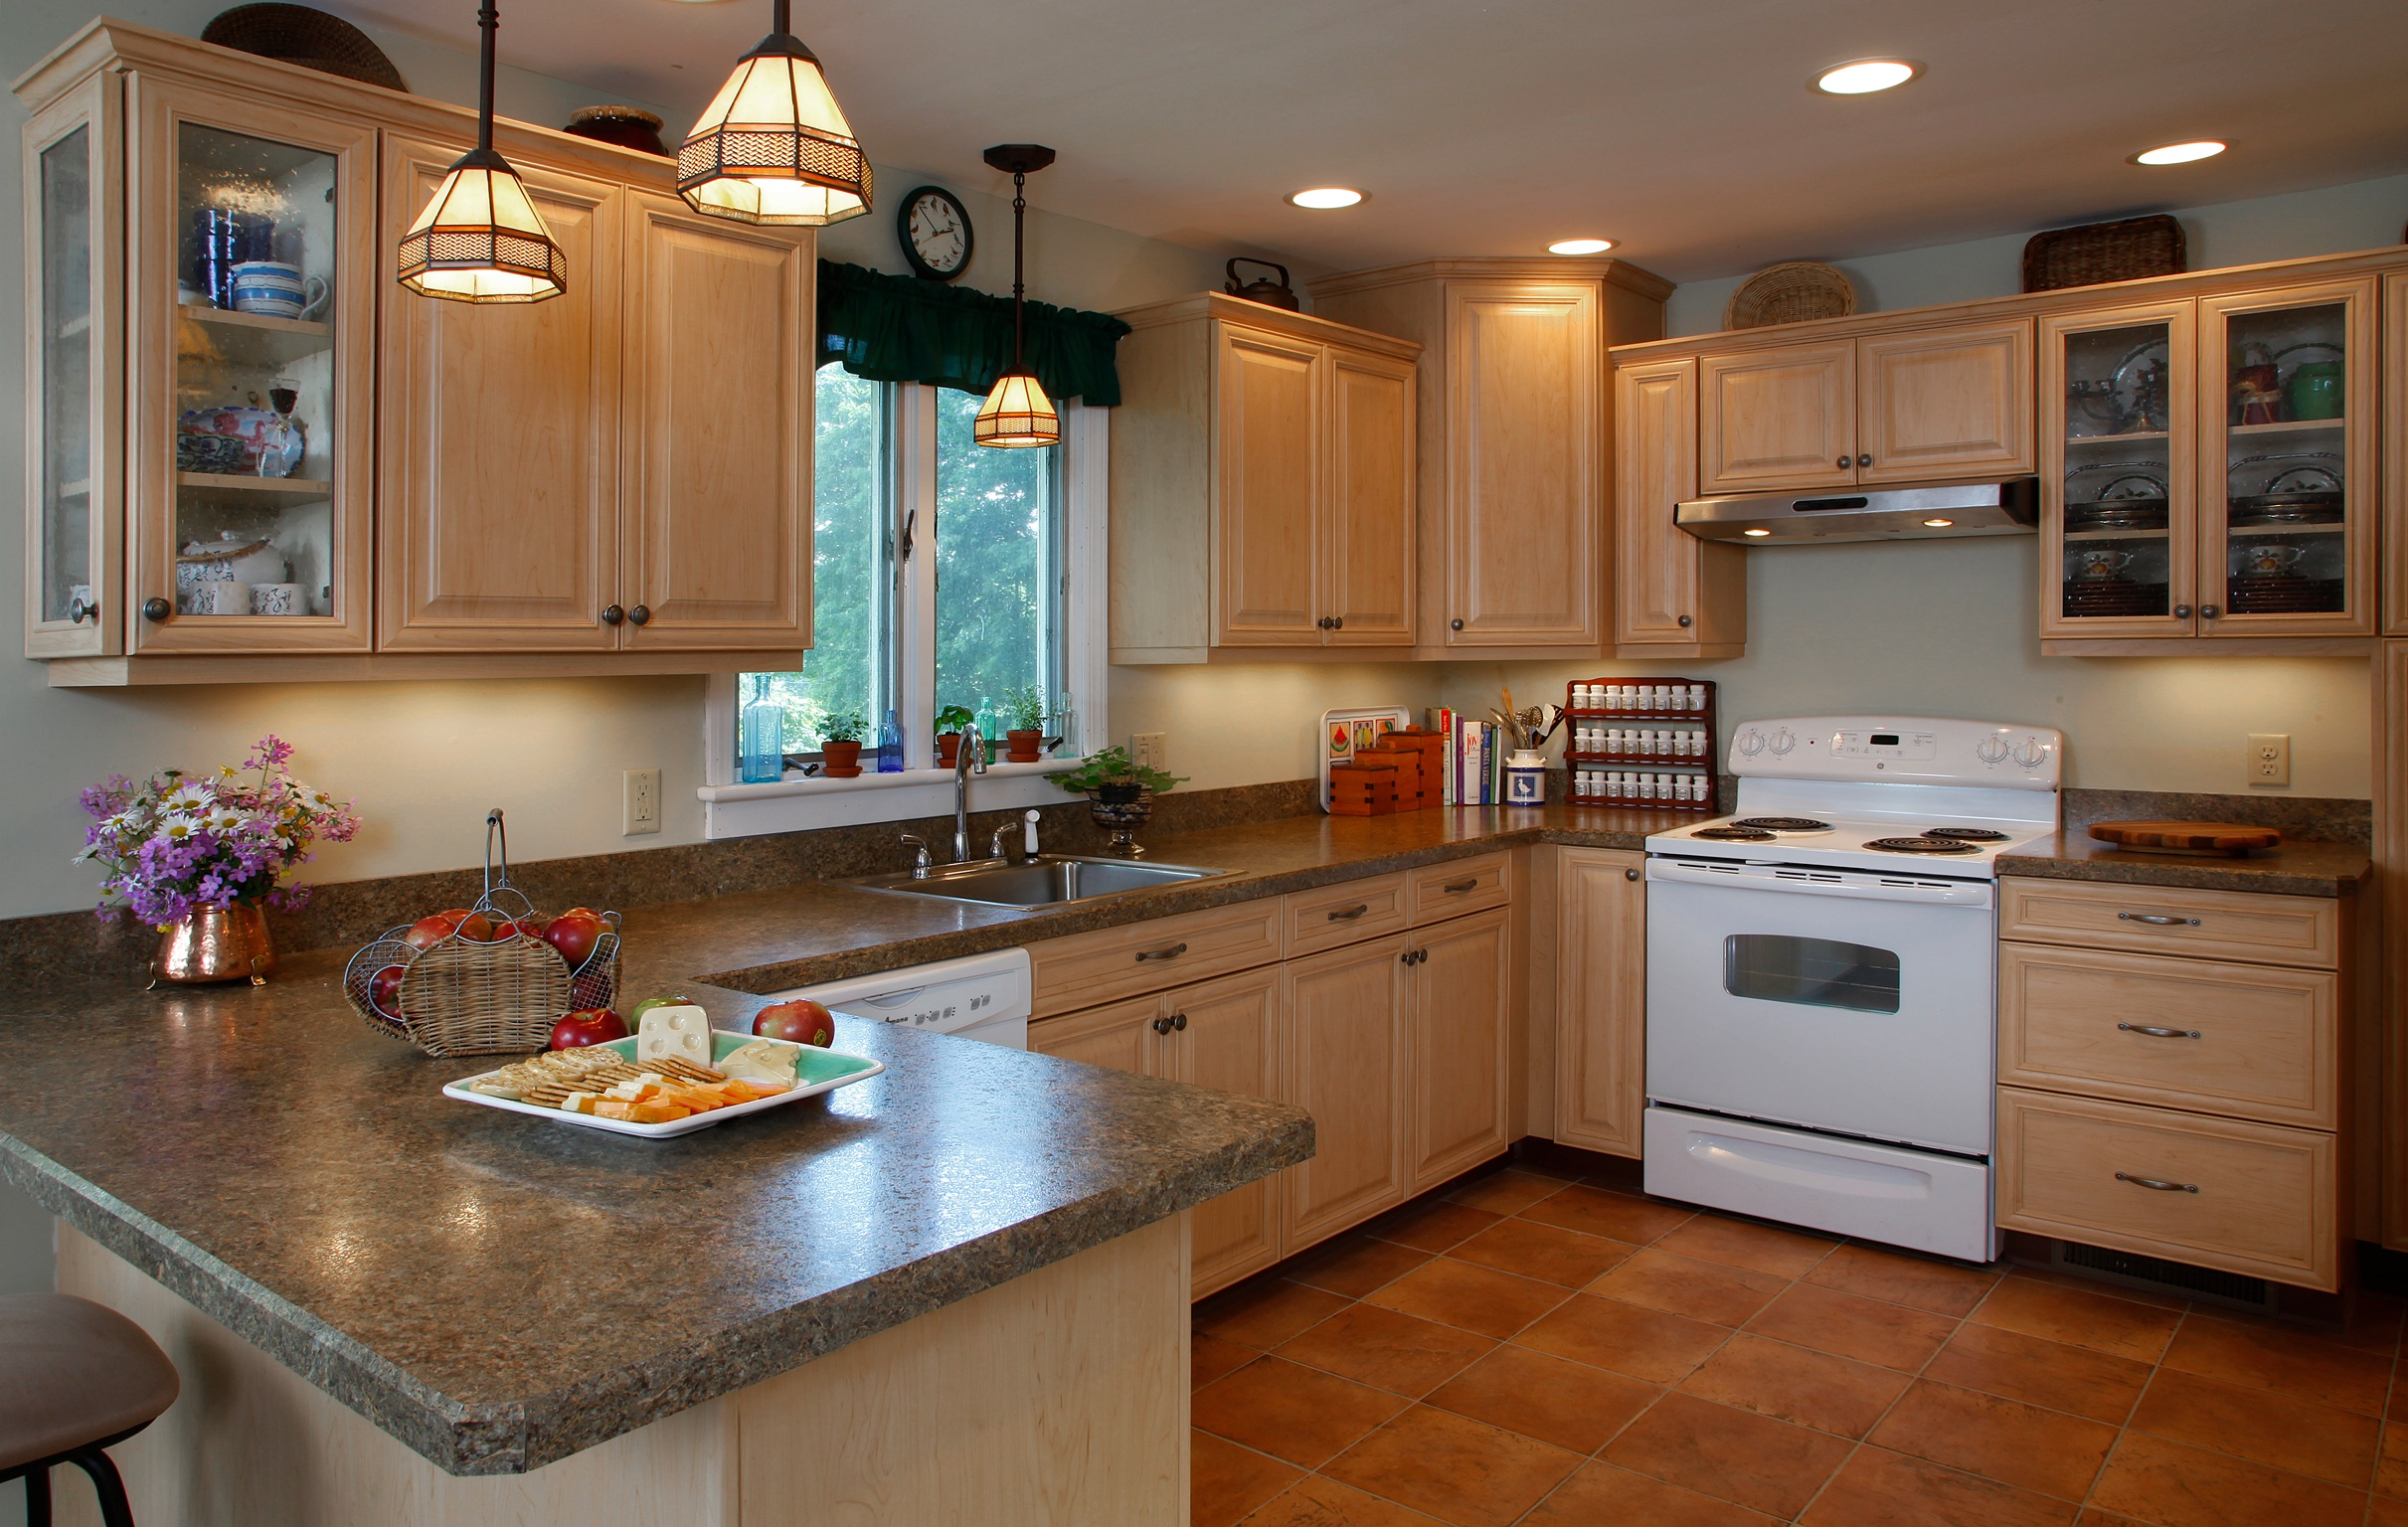 The pros and cons of the 4 inch backsplash